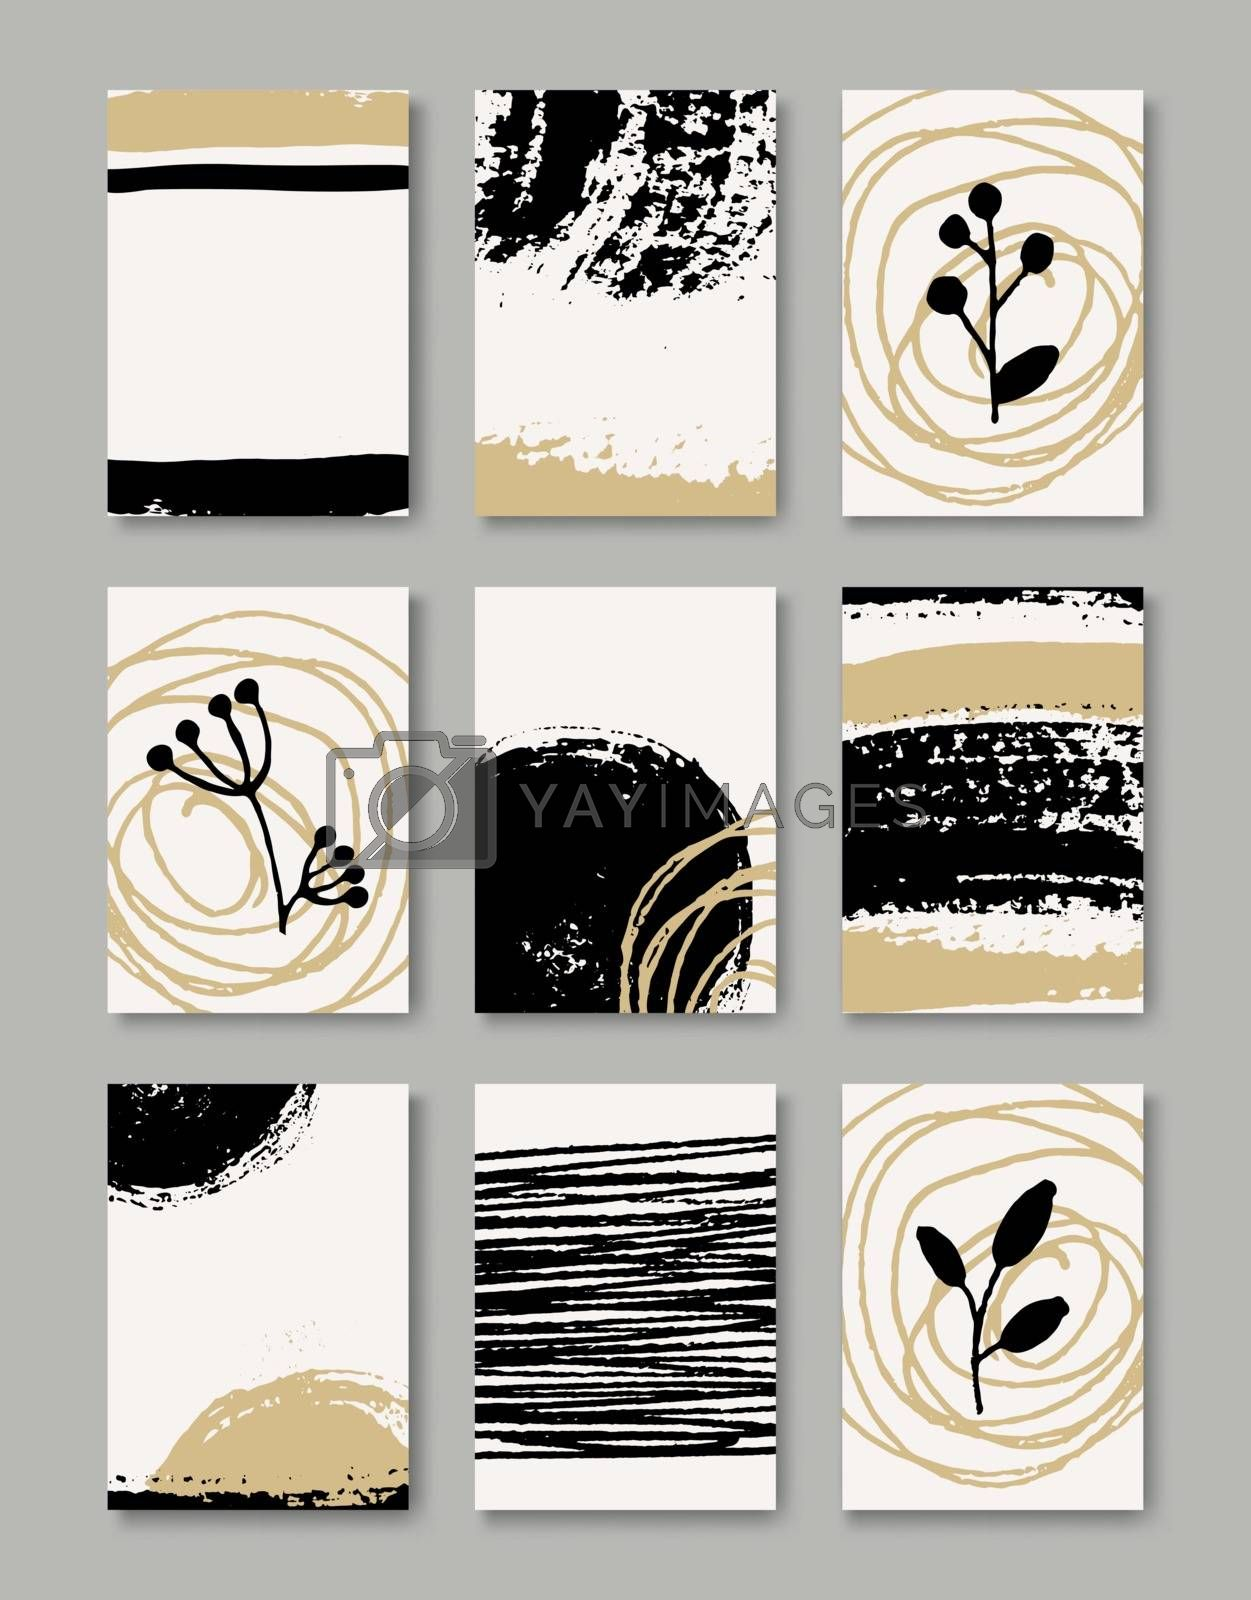 A set of hand drawn style greeting card templates in black, white and golden. Abstract brush strokes, ink doodles and floral element pattern designs with copy space. EPS 10 file, gradient mesh used.